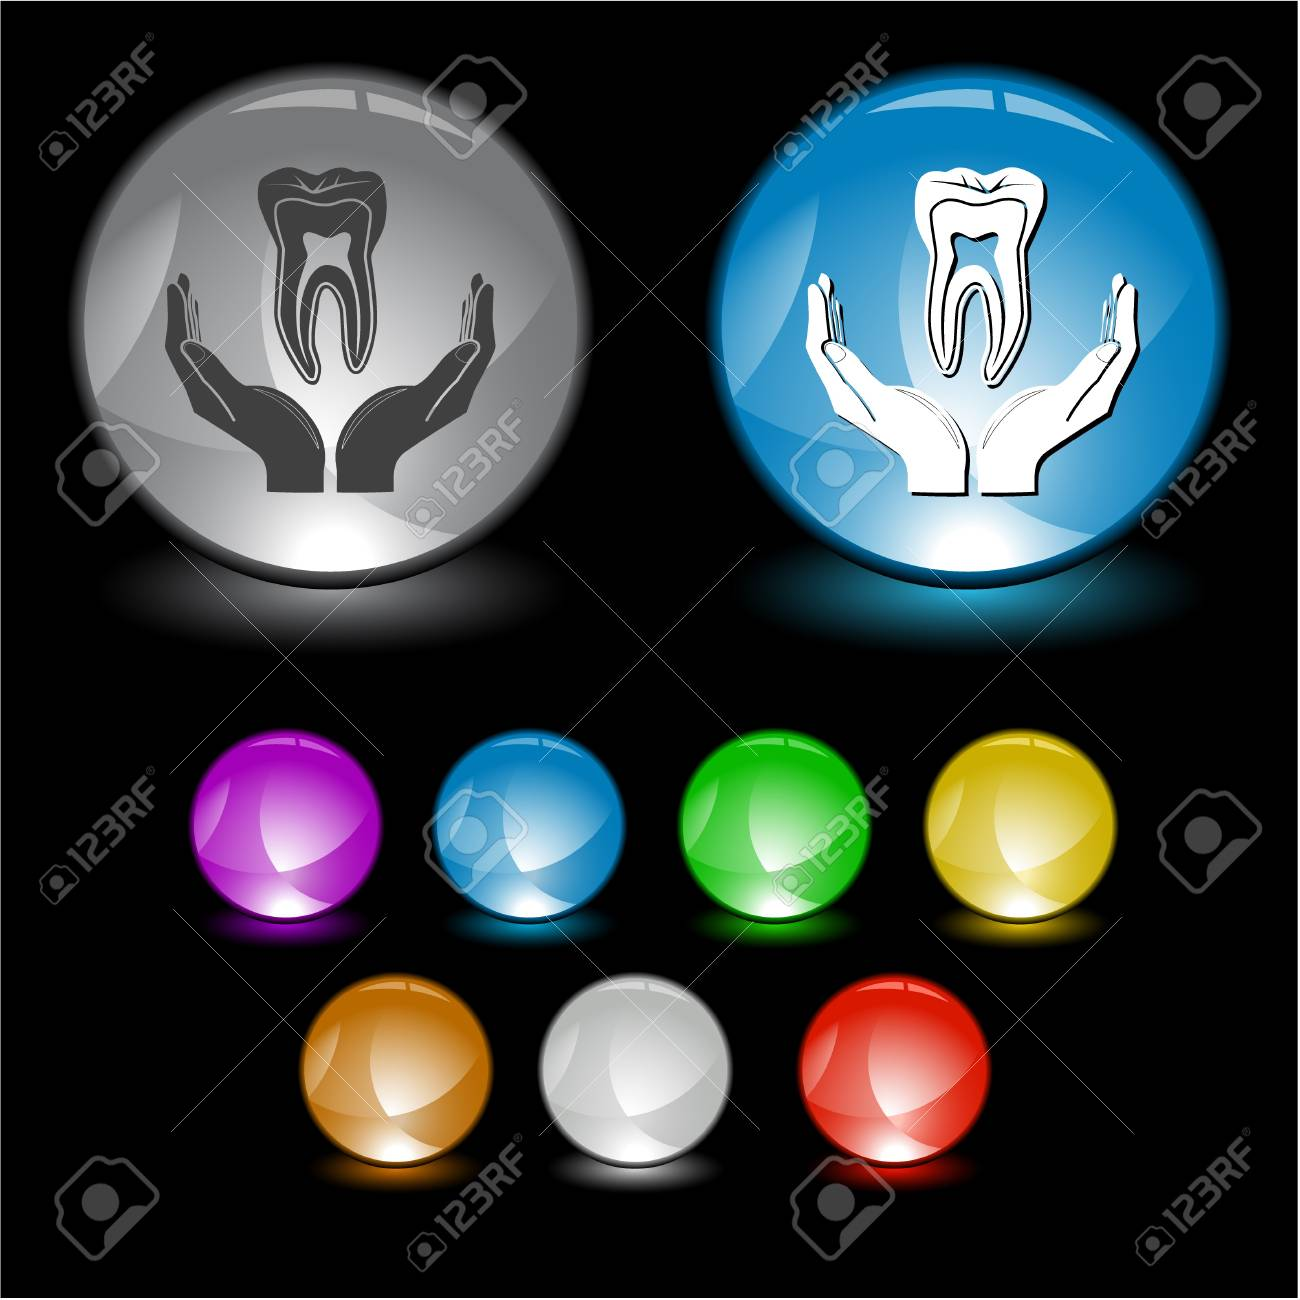 tooth in hands. Vector interface element. Stock Photo - 9271560